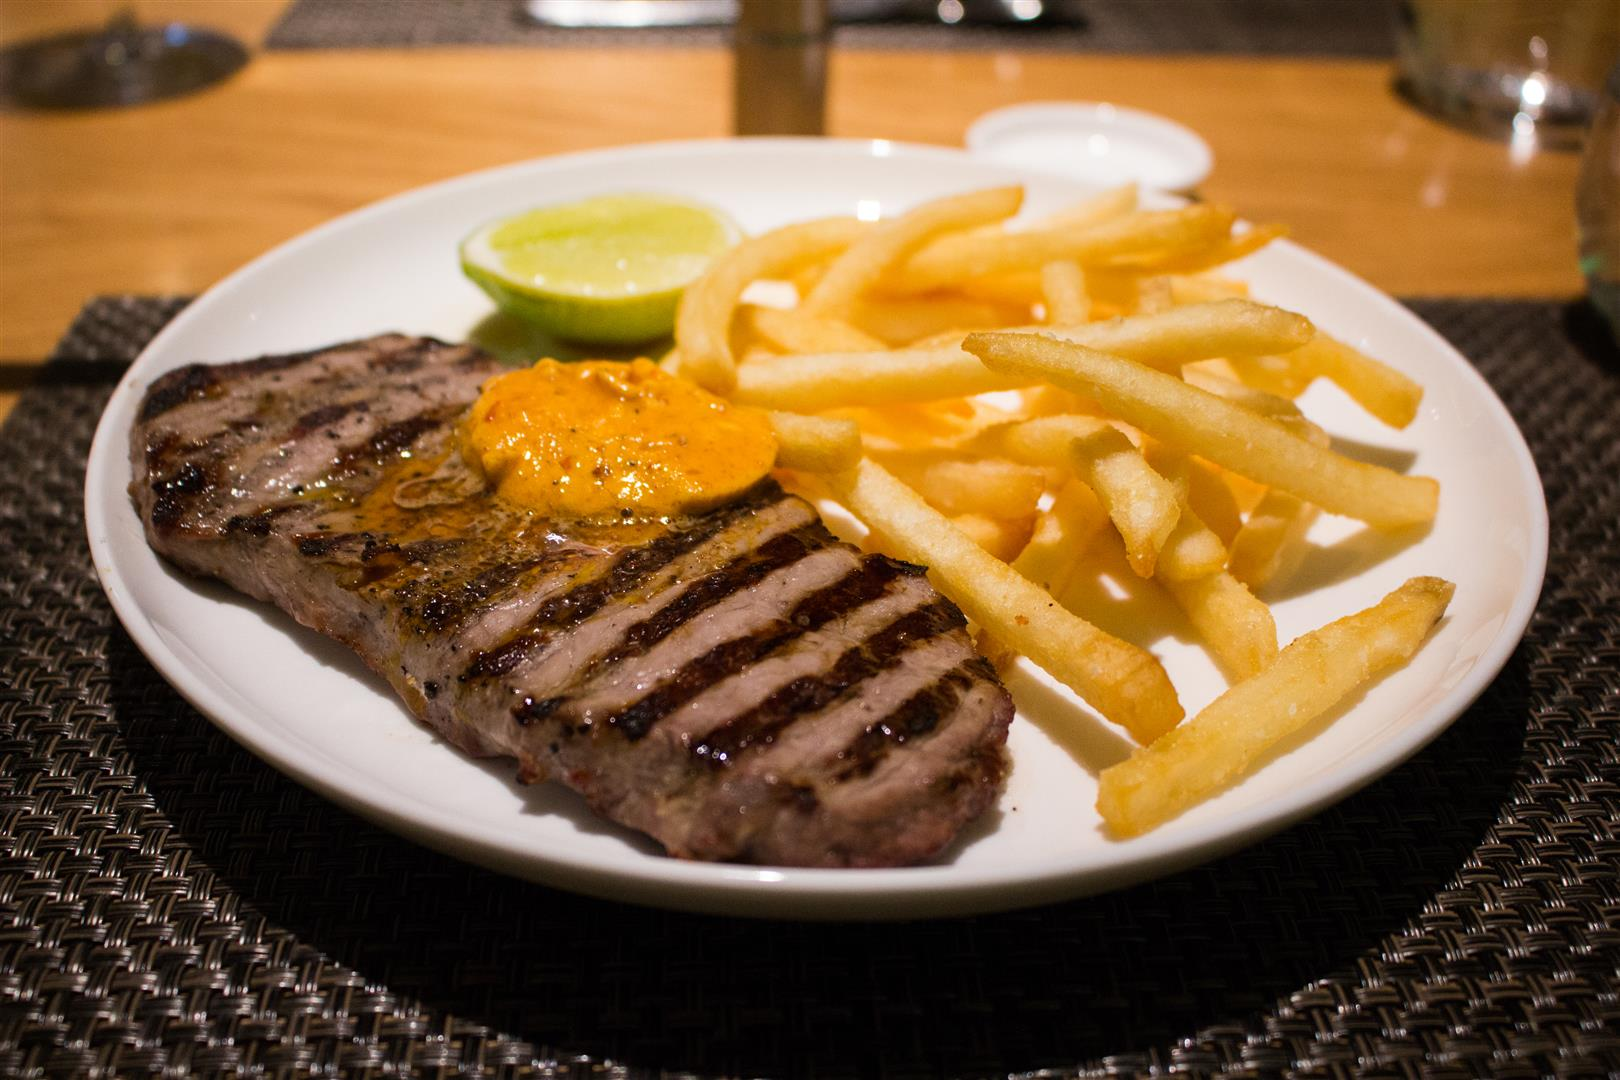 The Minute Steak with Chips